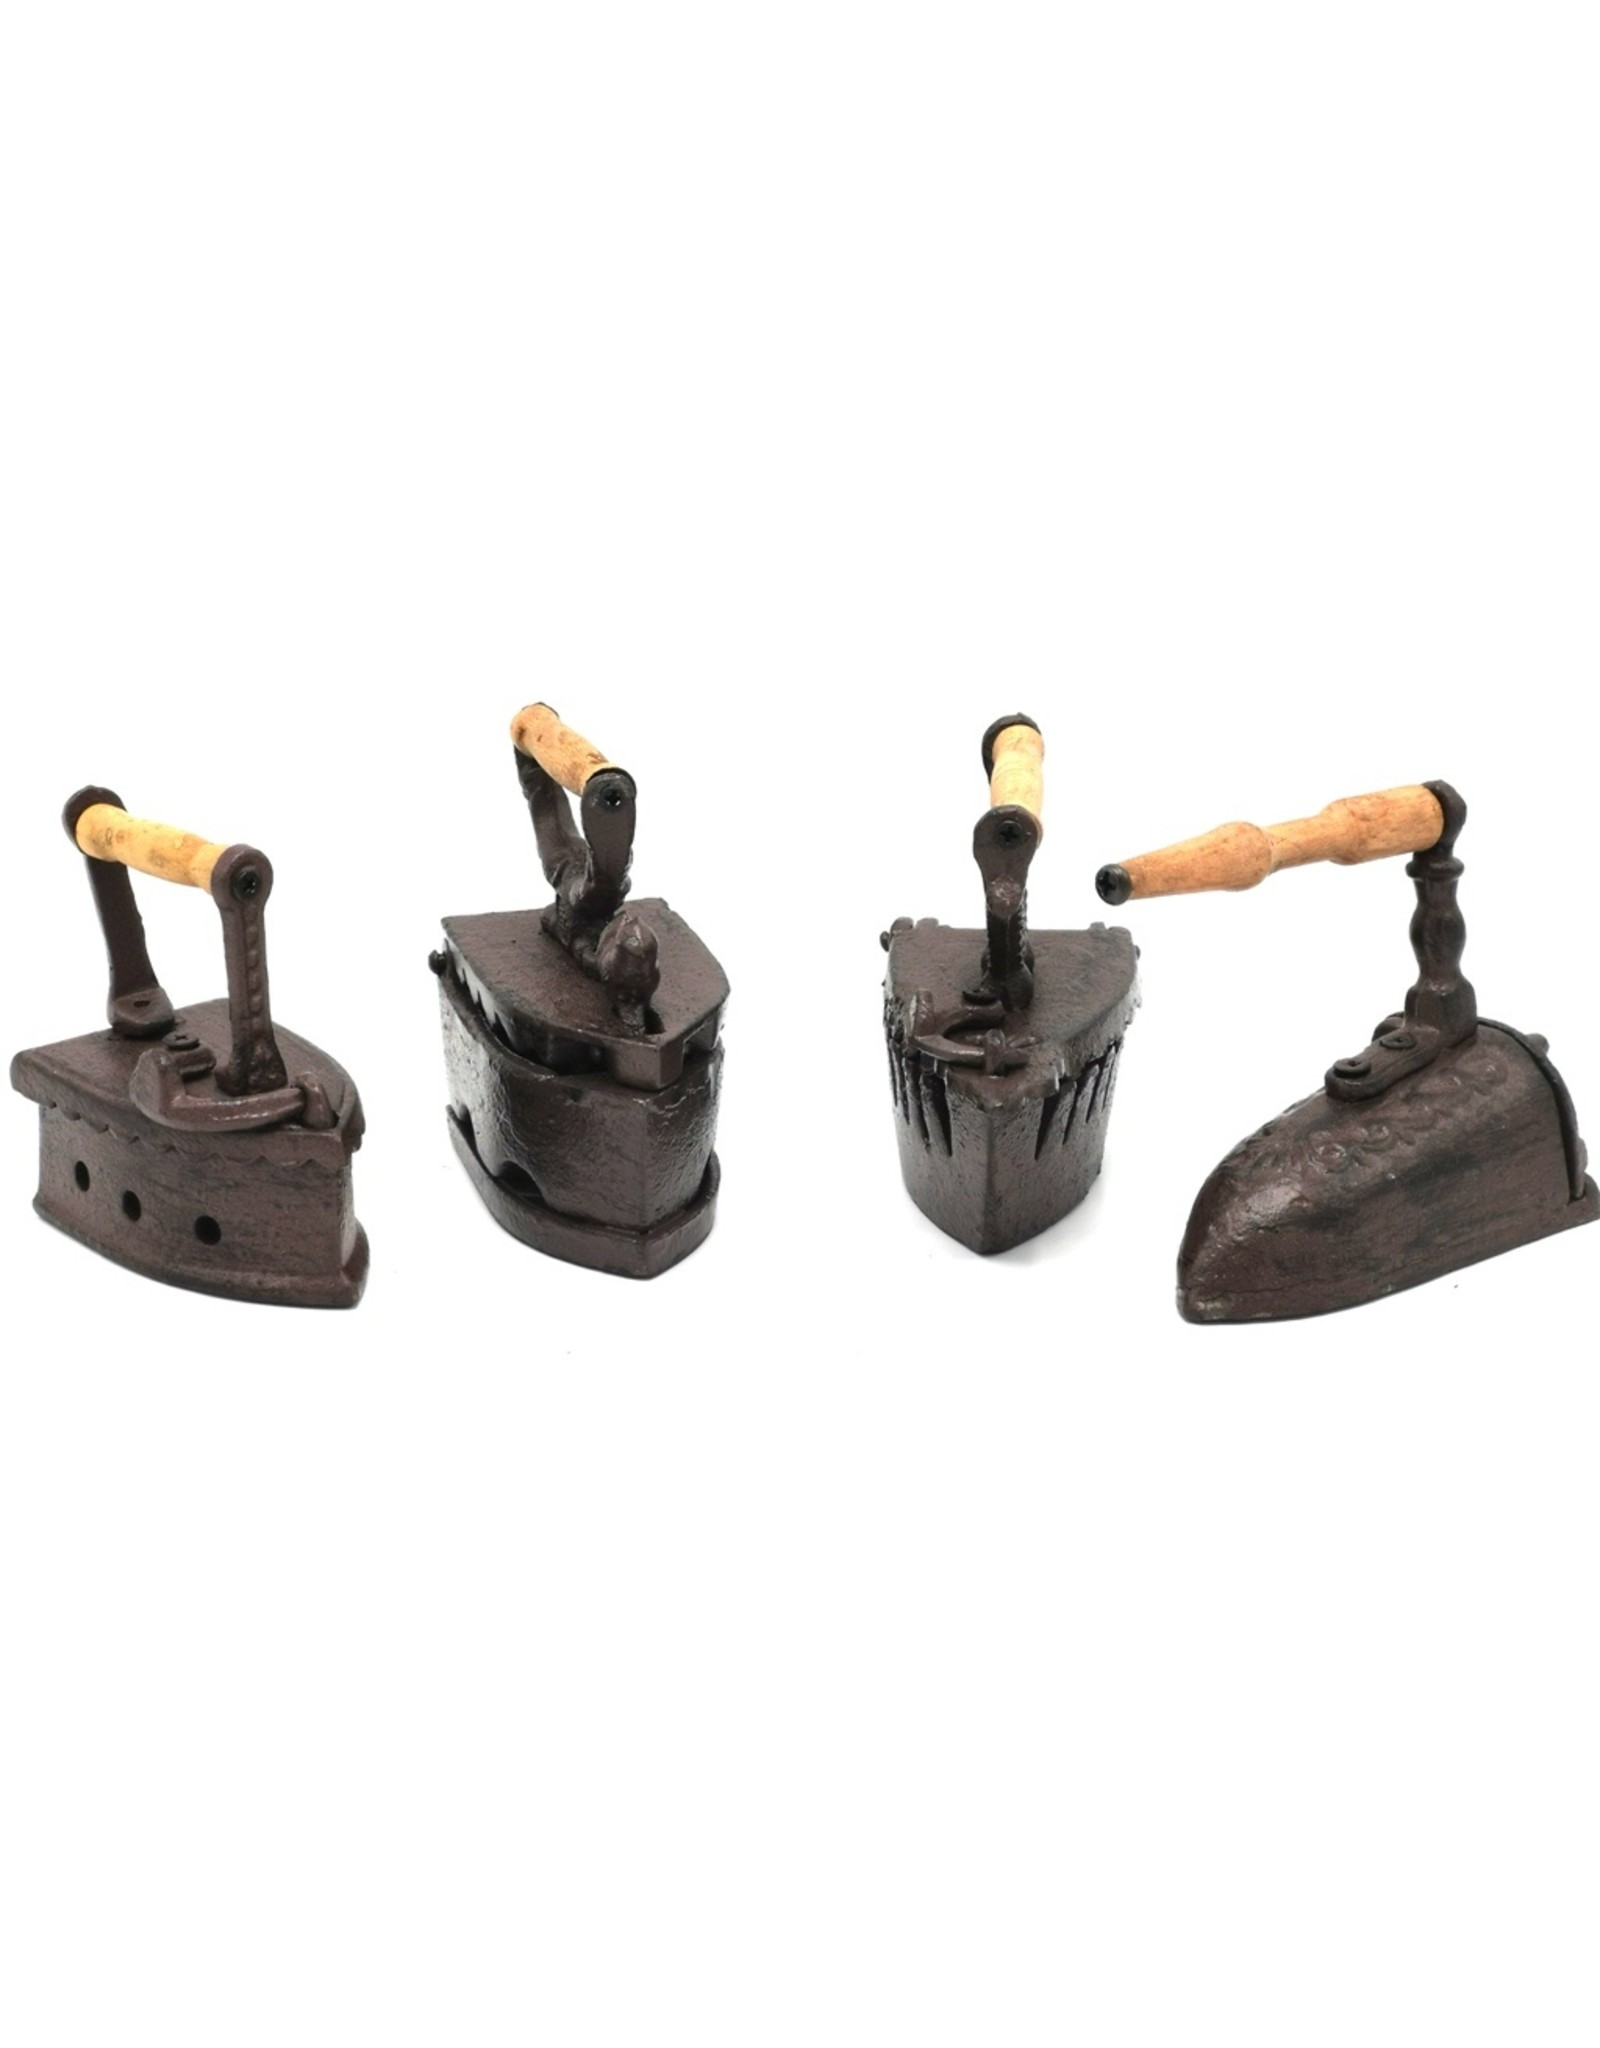 Trukado Miscellaneous - Coal Irons Miniatures set of 4, cast iron